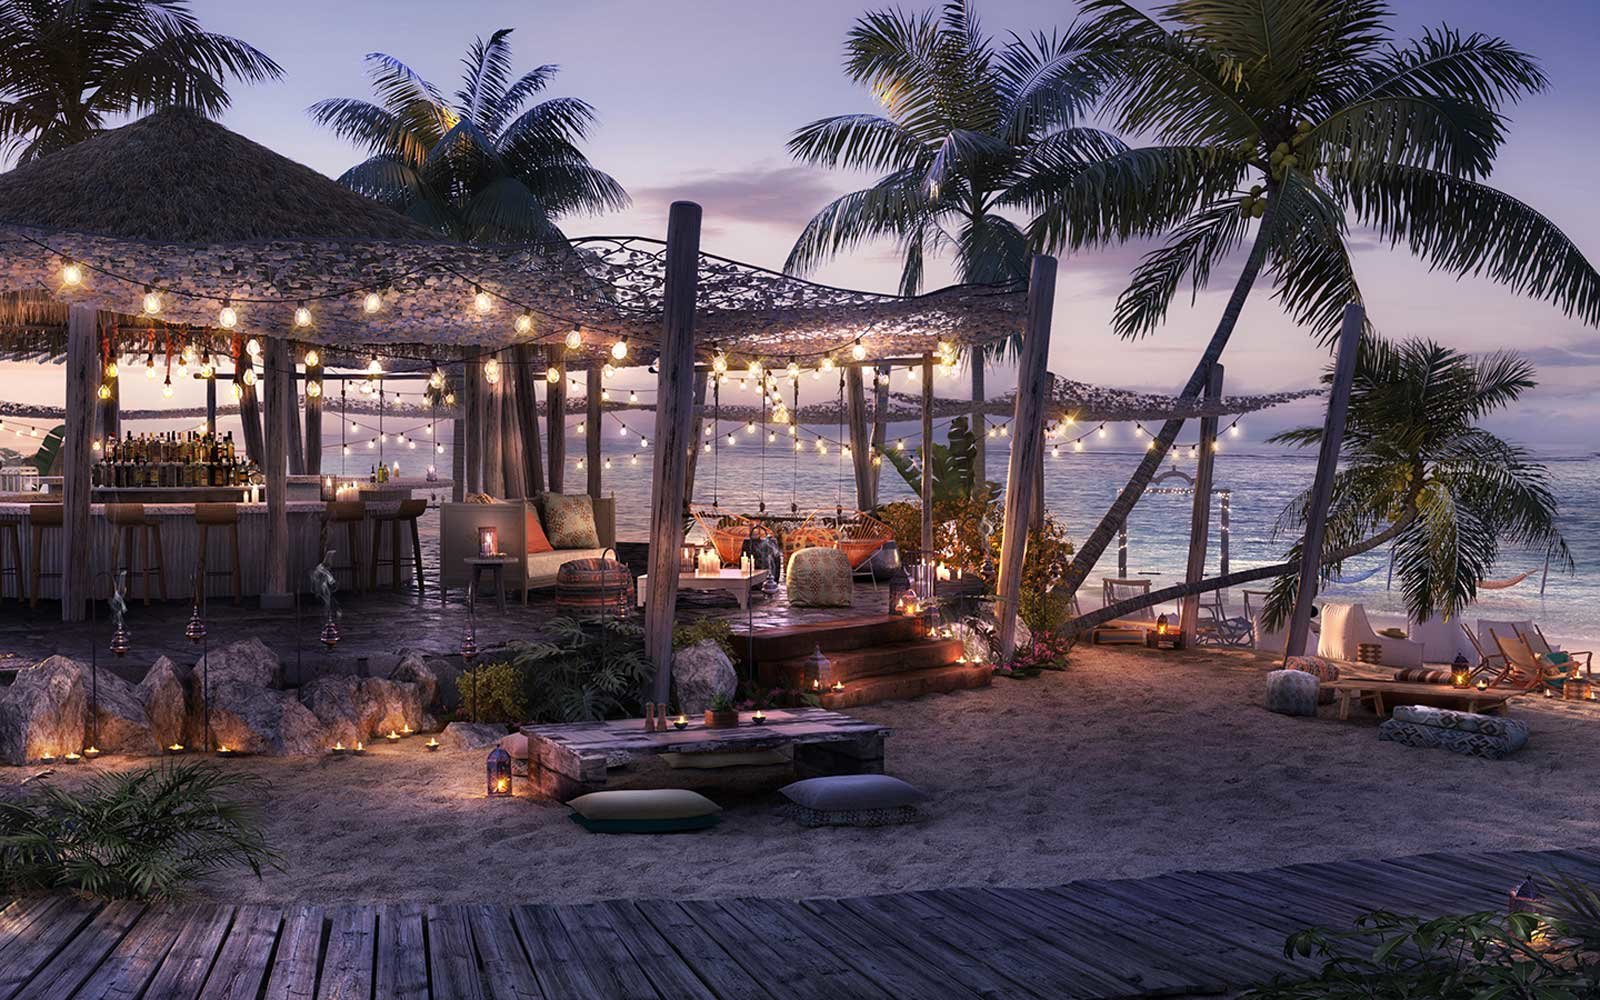 Virgin Voyages Wants To Build A Party Scene In The Bahamas